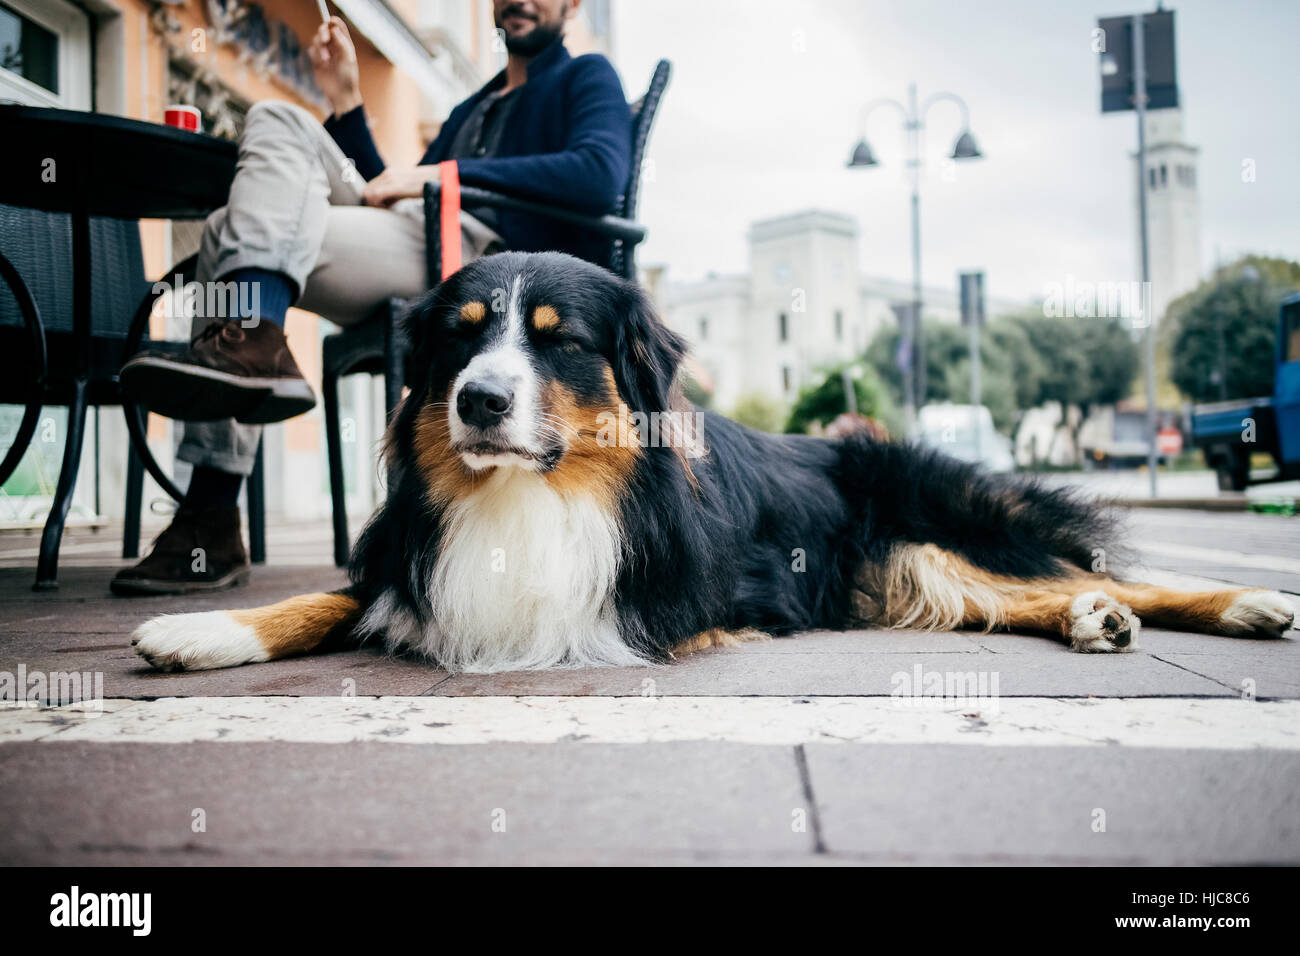 Portrait of dog lying down waiting at sidewalk cafe - Stock Image